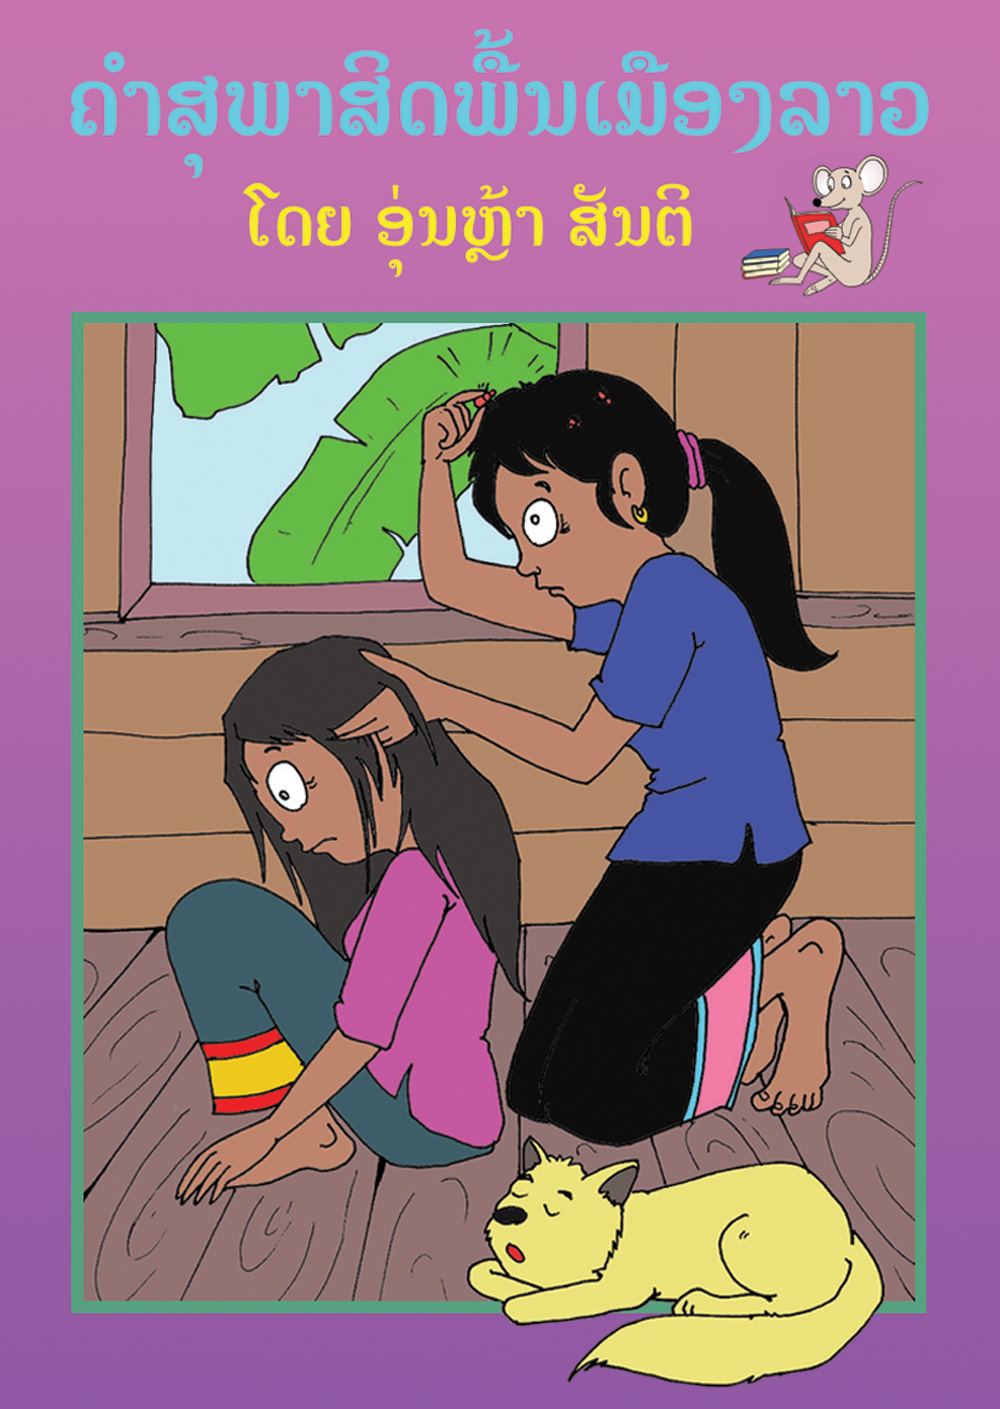 Lao Proverbs - Small (color) large book cover, published in Lao language